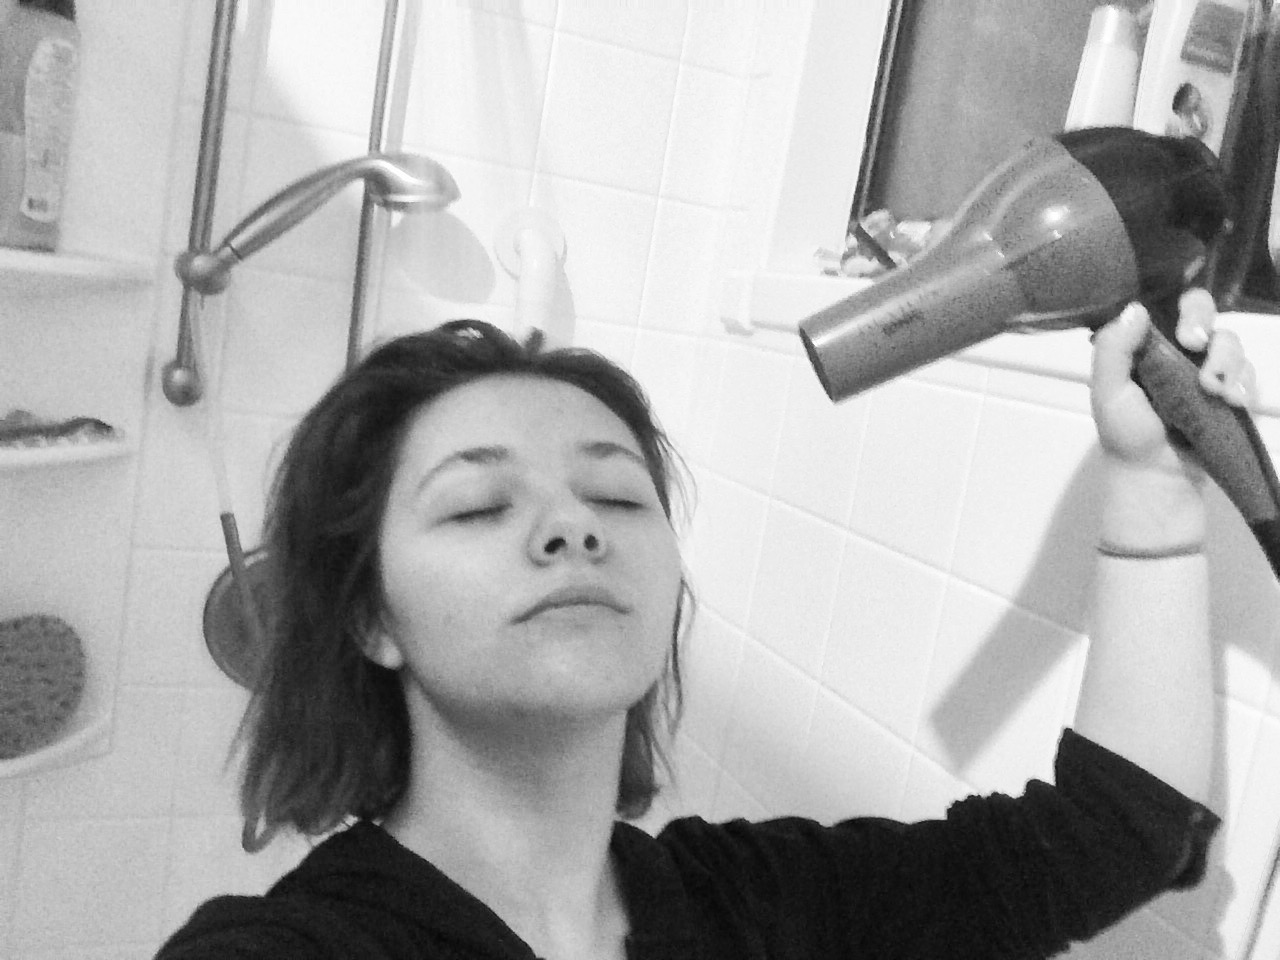 Idiot holds blow dryer in the shower.